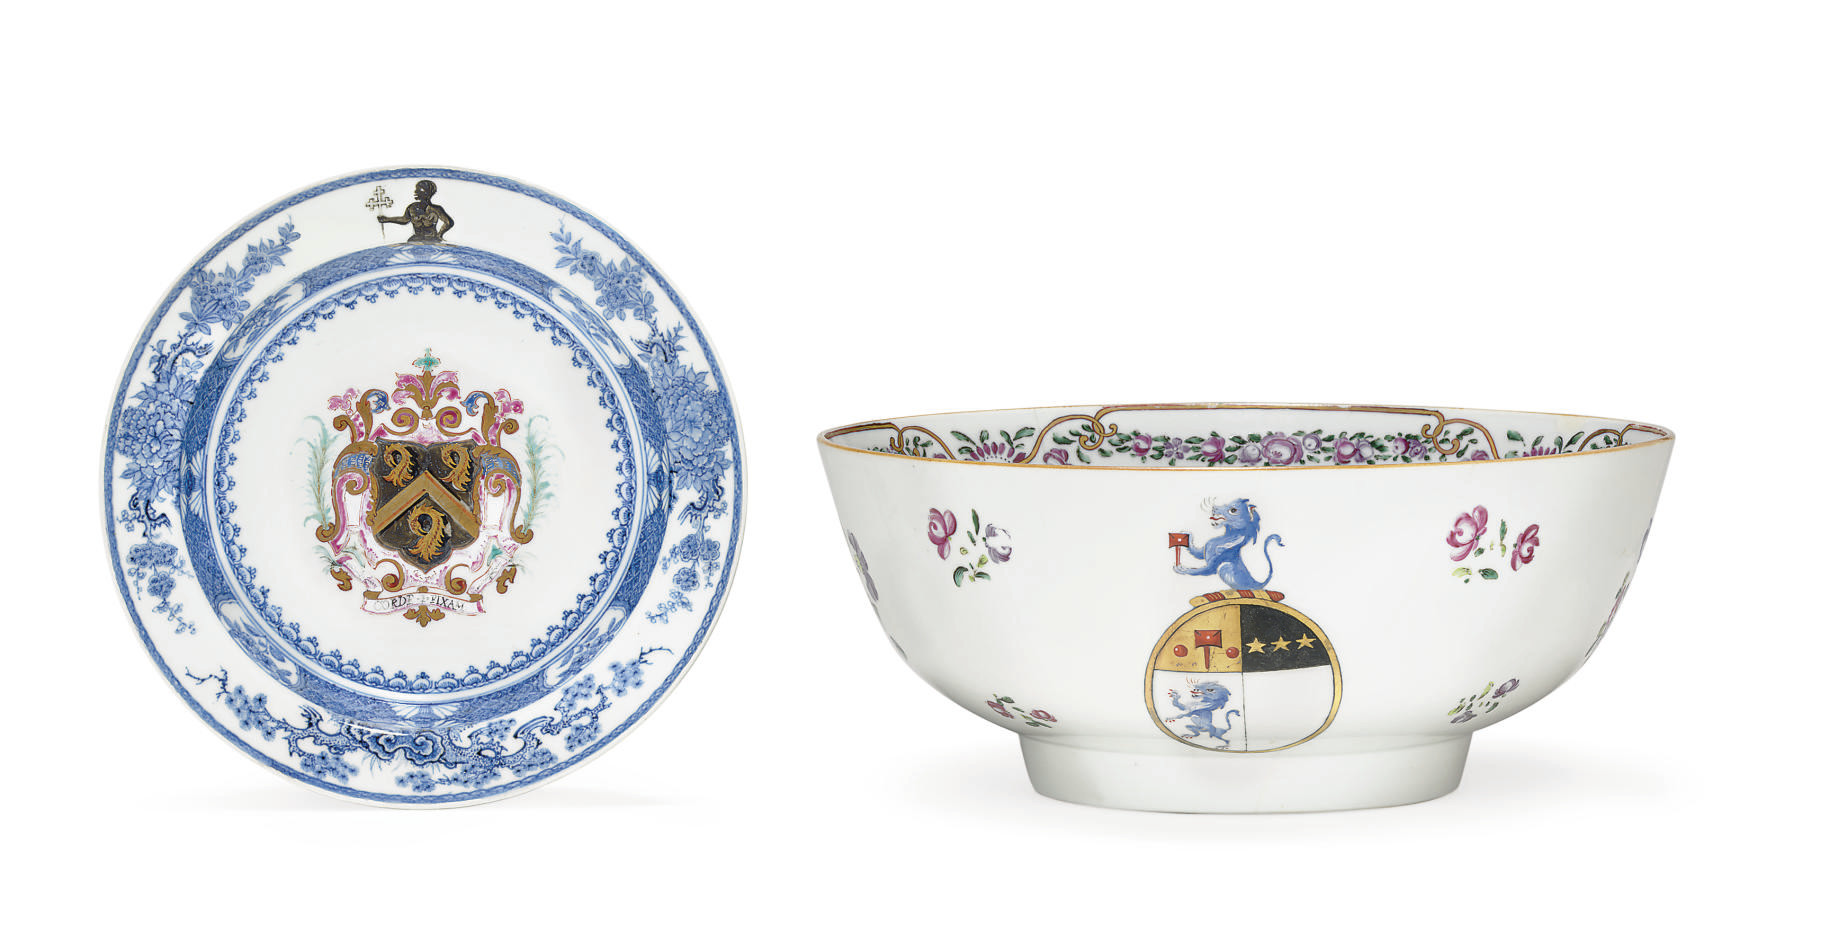 AN ARMORIAL SOUP PLATE AND PUN